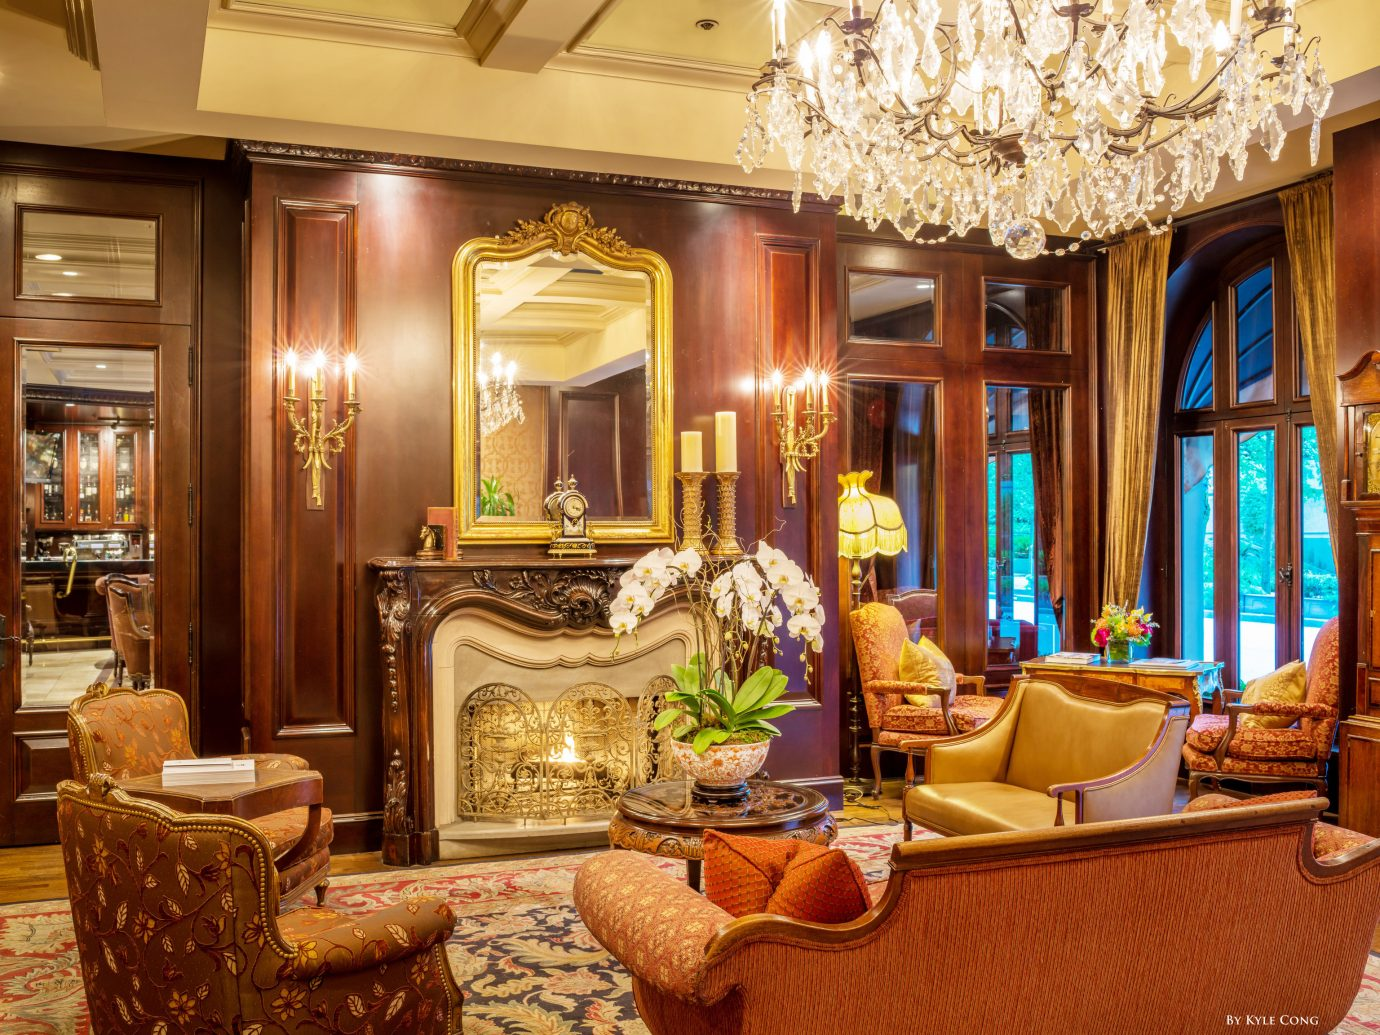 Hotels indoor room window living room property estate Lobby Living home mansion ceiling interior design dining room Suite palace furniture